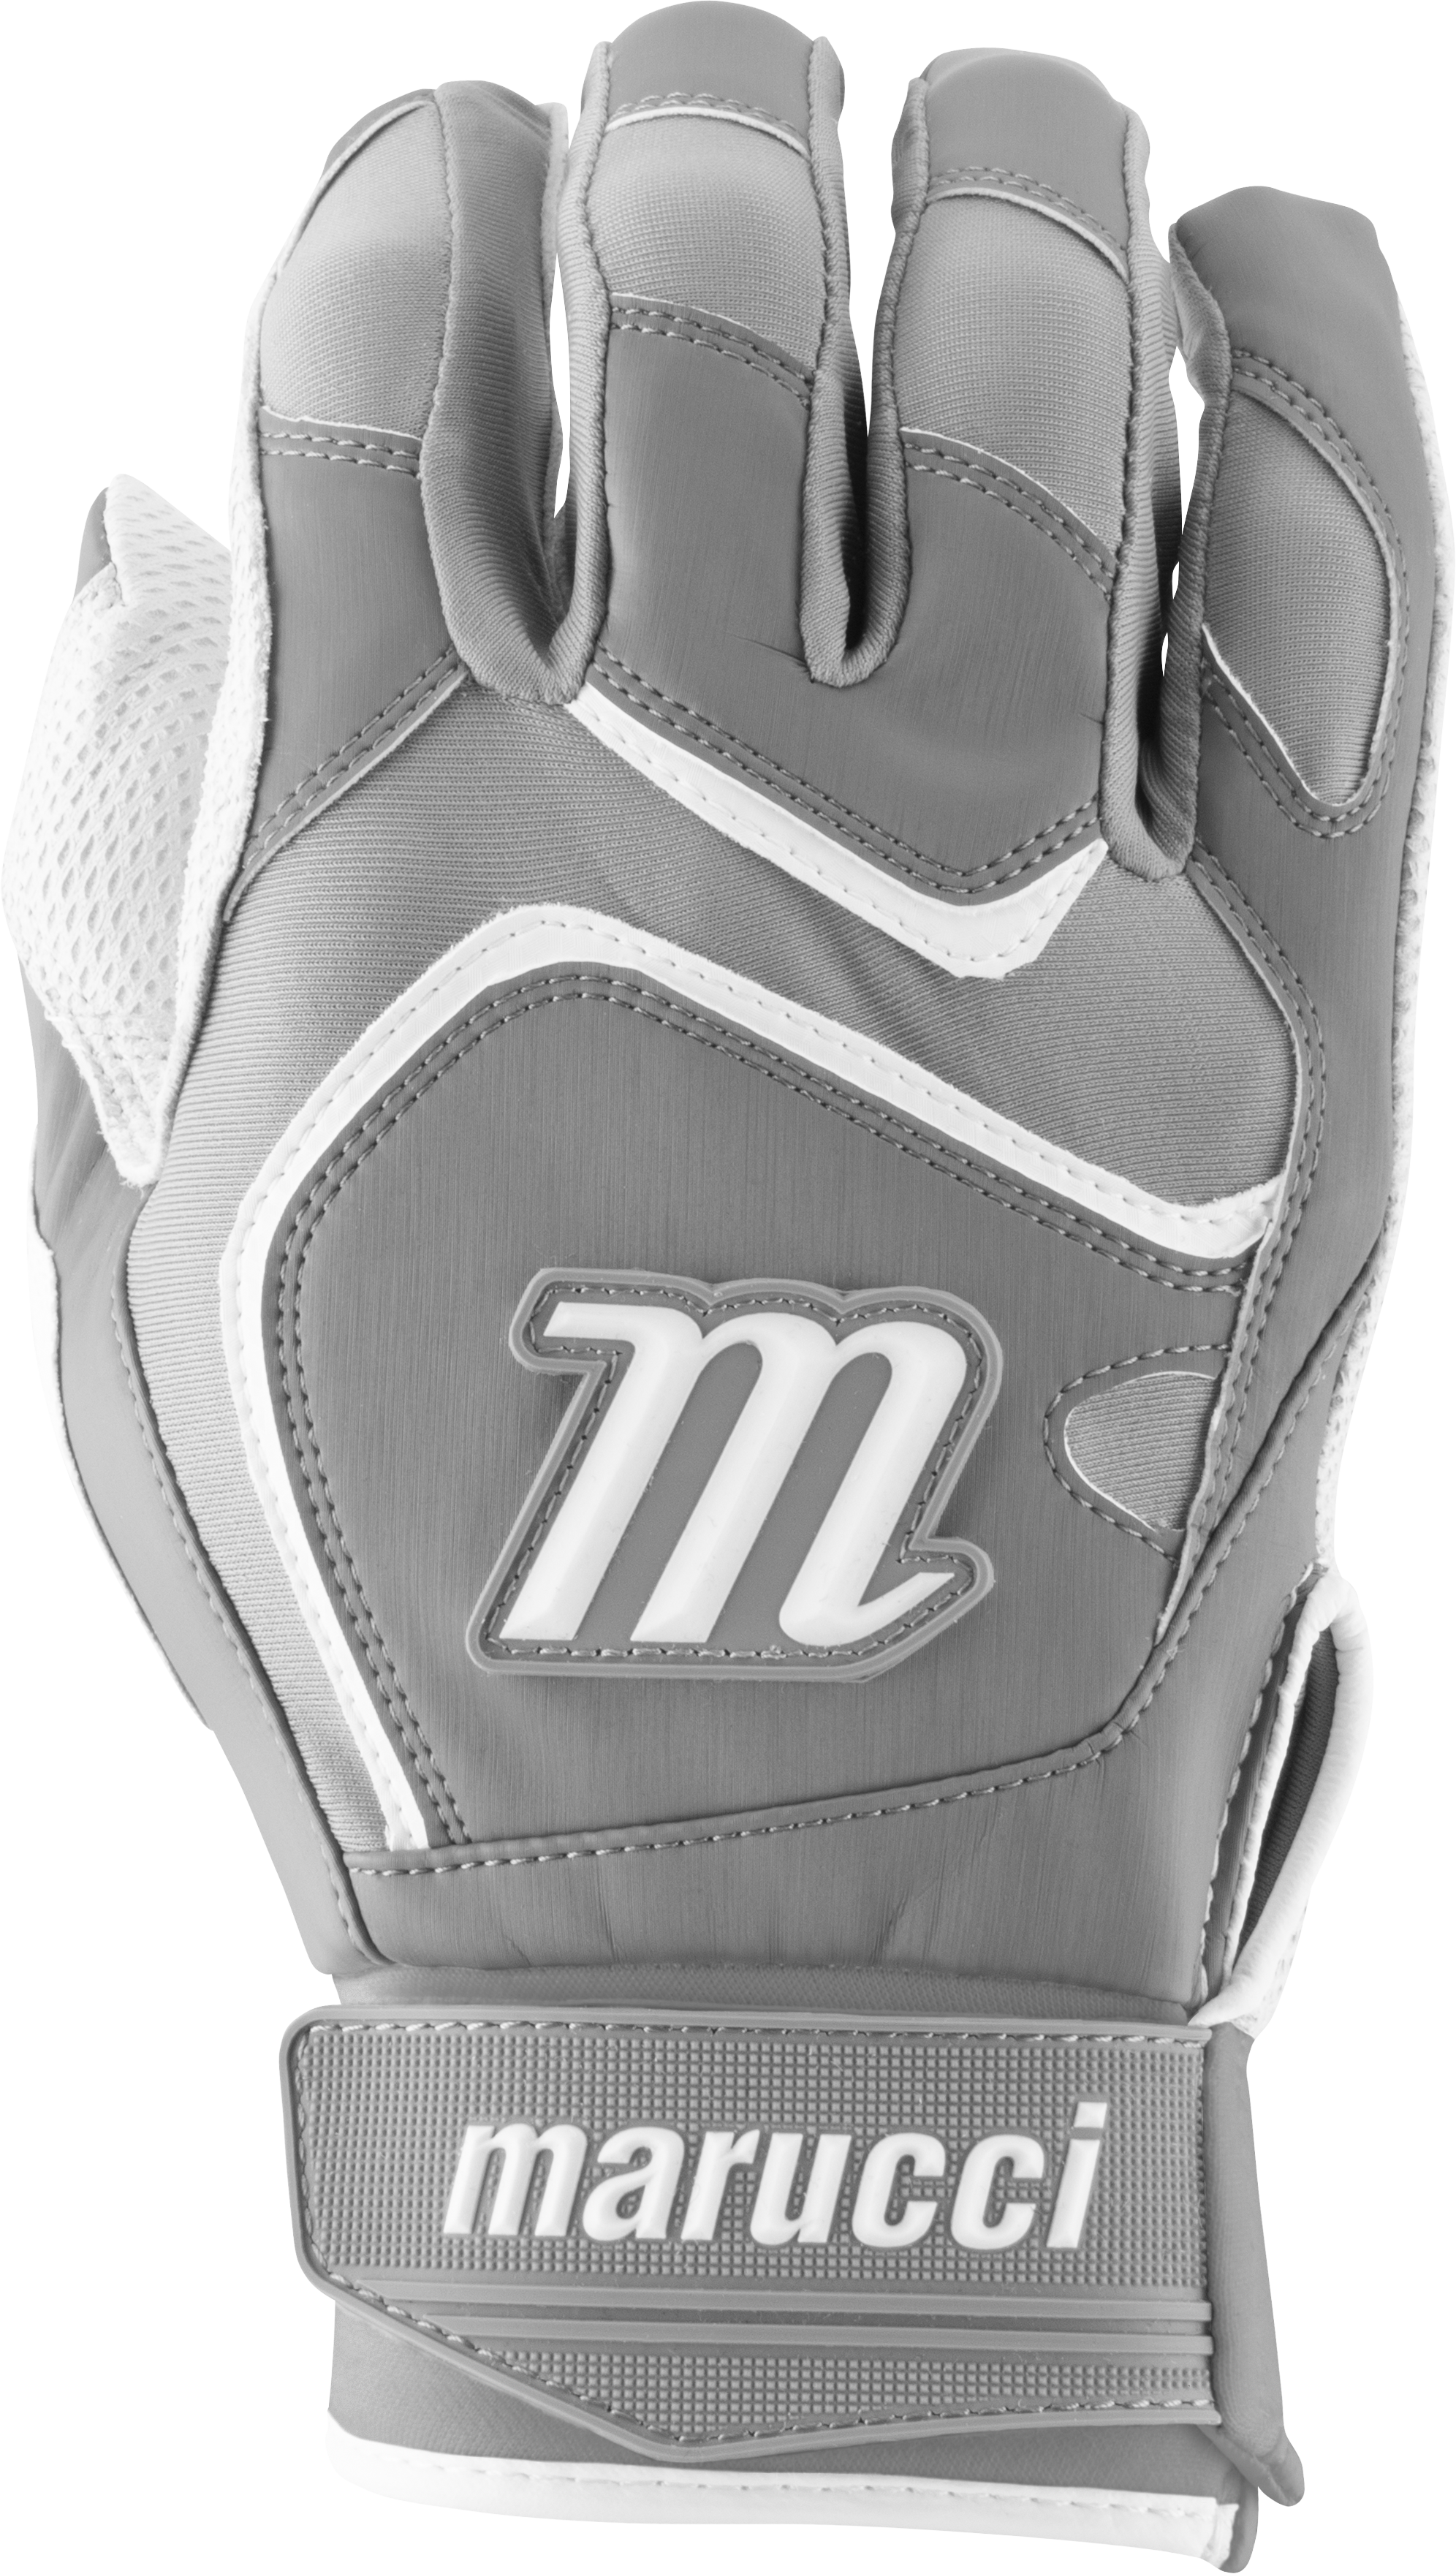 marucci-signature-batting-gloves-mbgsgn2-1-pair-white-grey-adult-x-large MBGSGN2-WGY-AXL Marucci 849817096819 2019 Model MBGSGN2 Consistency And Craftsmanship Commitment To Quality And Understanding